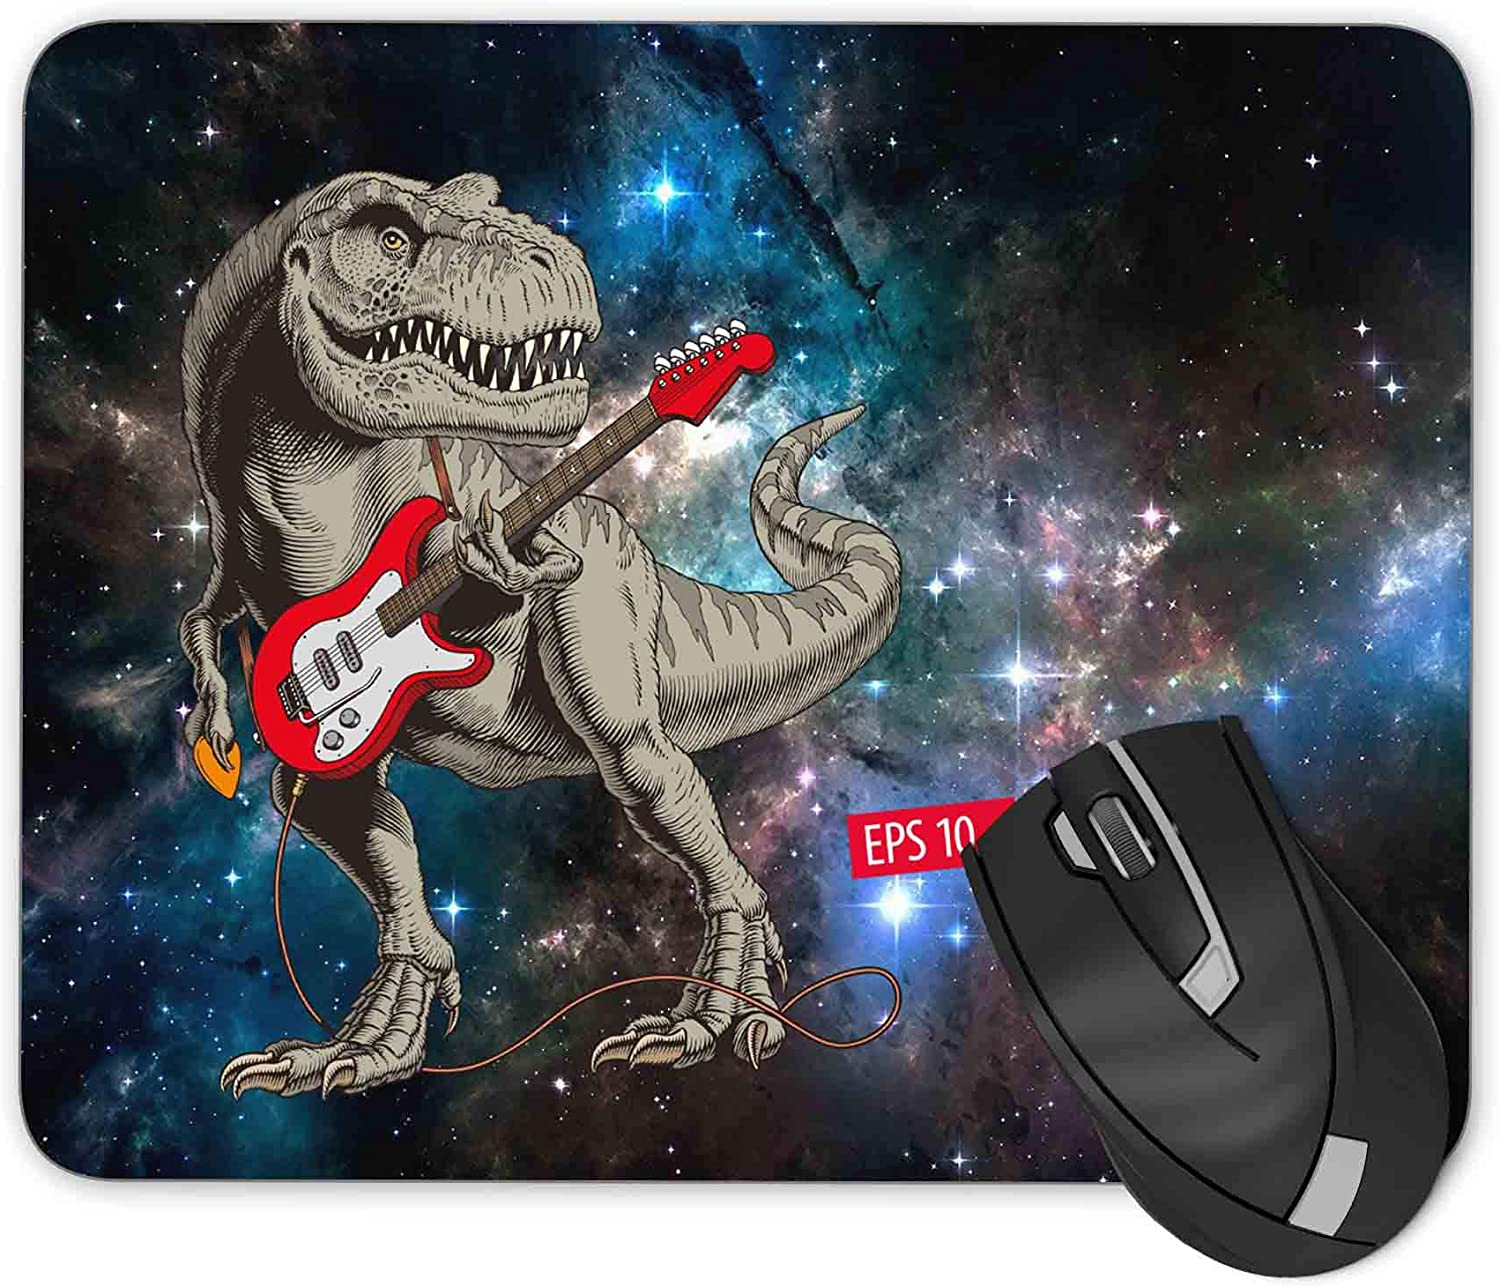 Dinosaur Playing The Guitar Gaming Time sale pad Mousepad Mouse Max 44% OFF